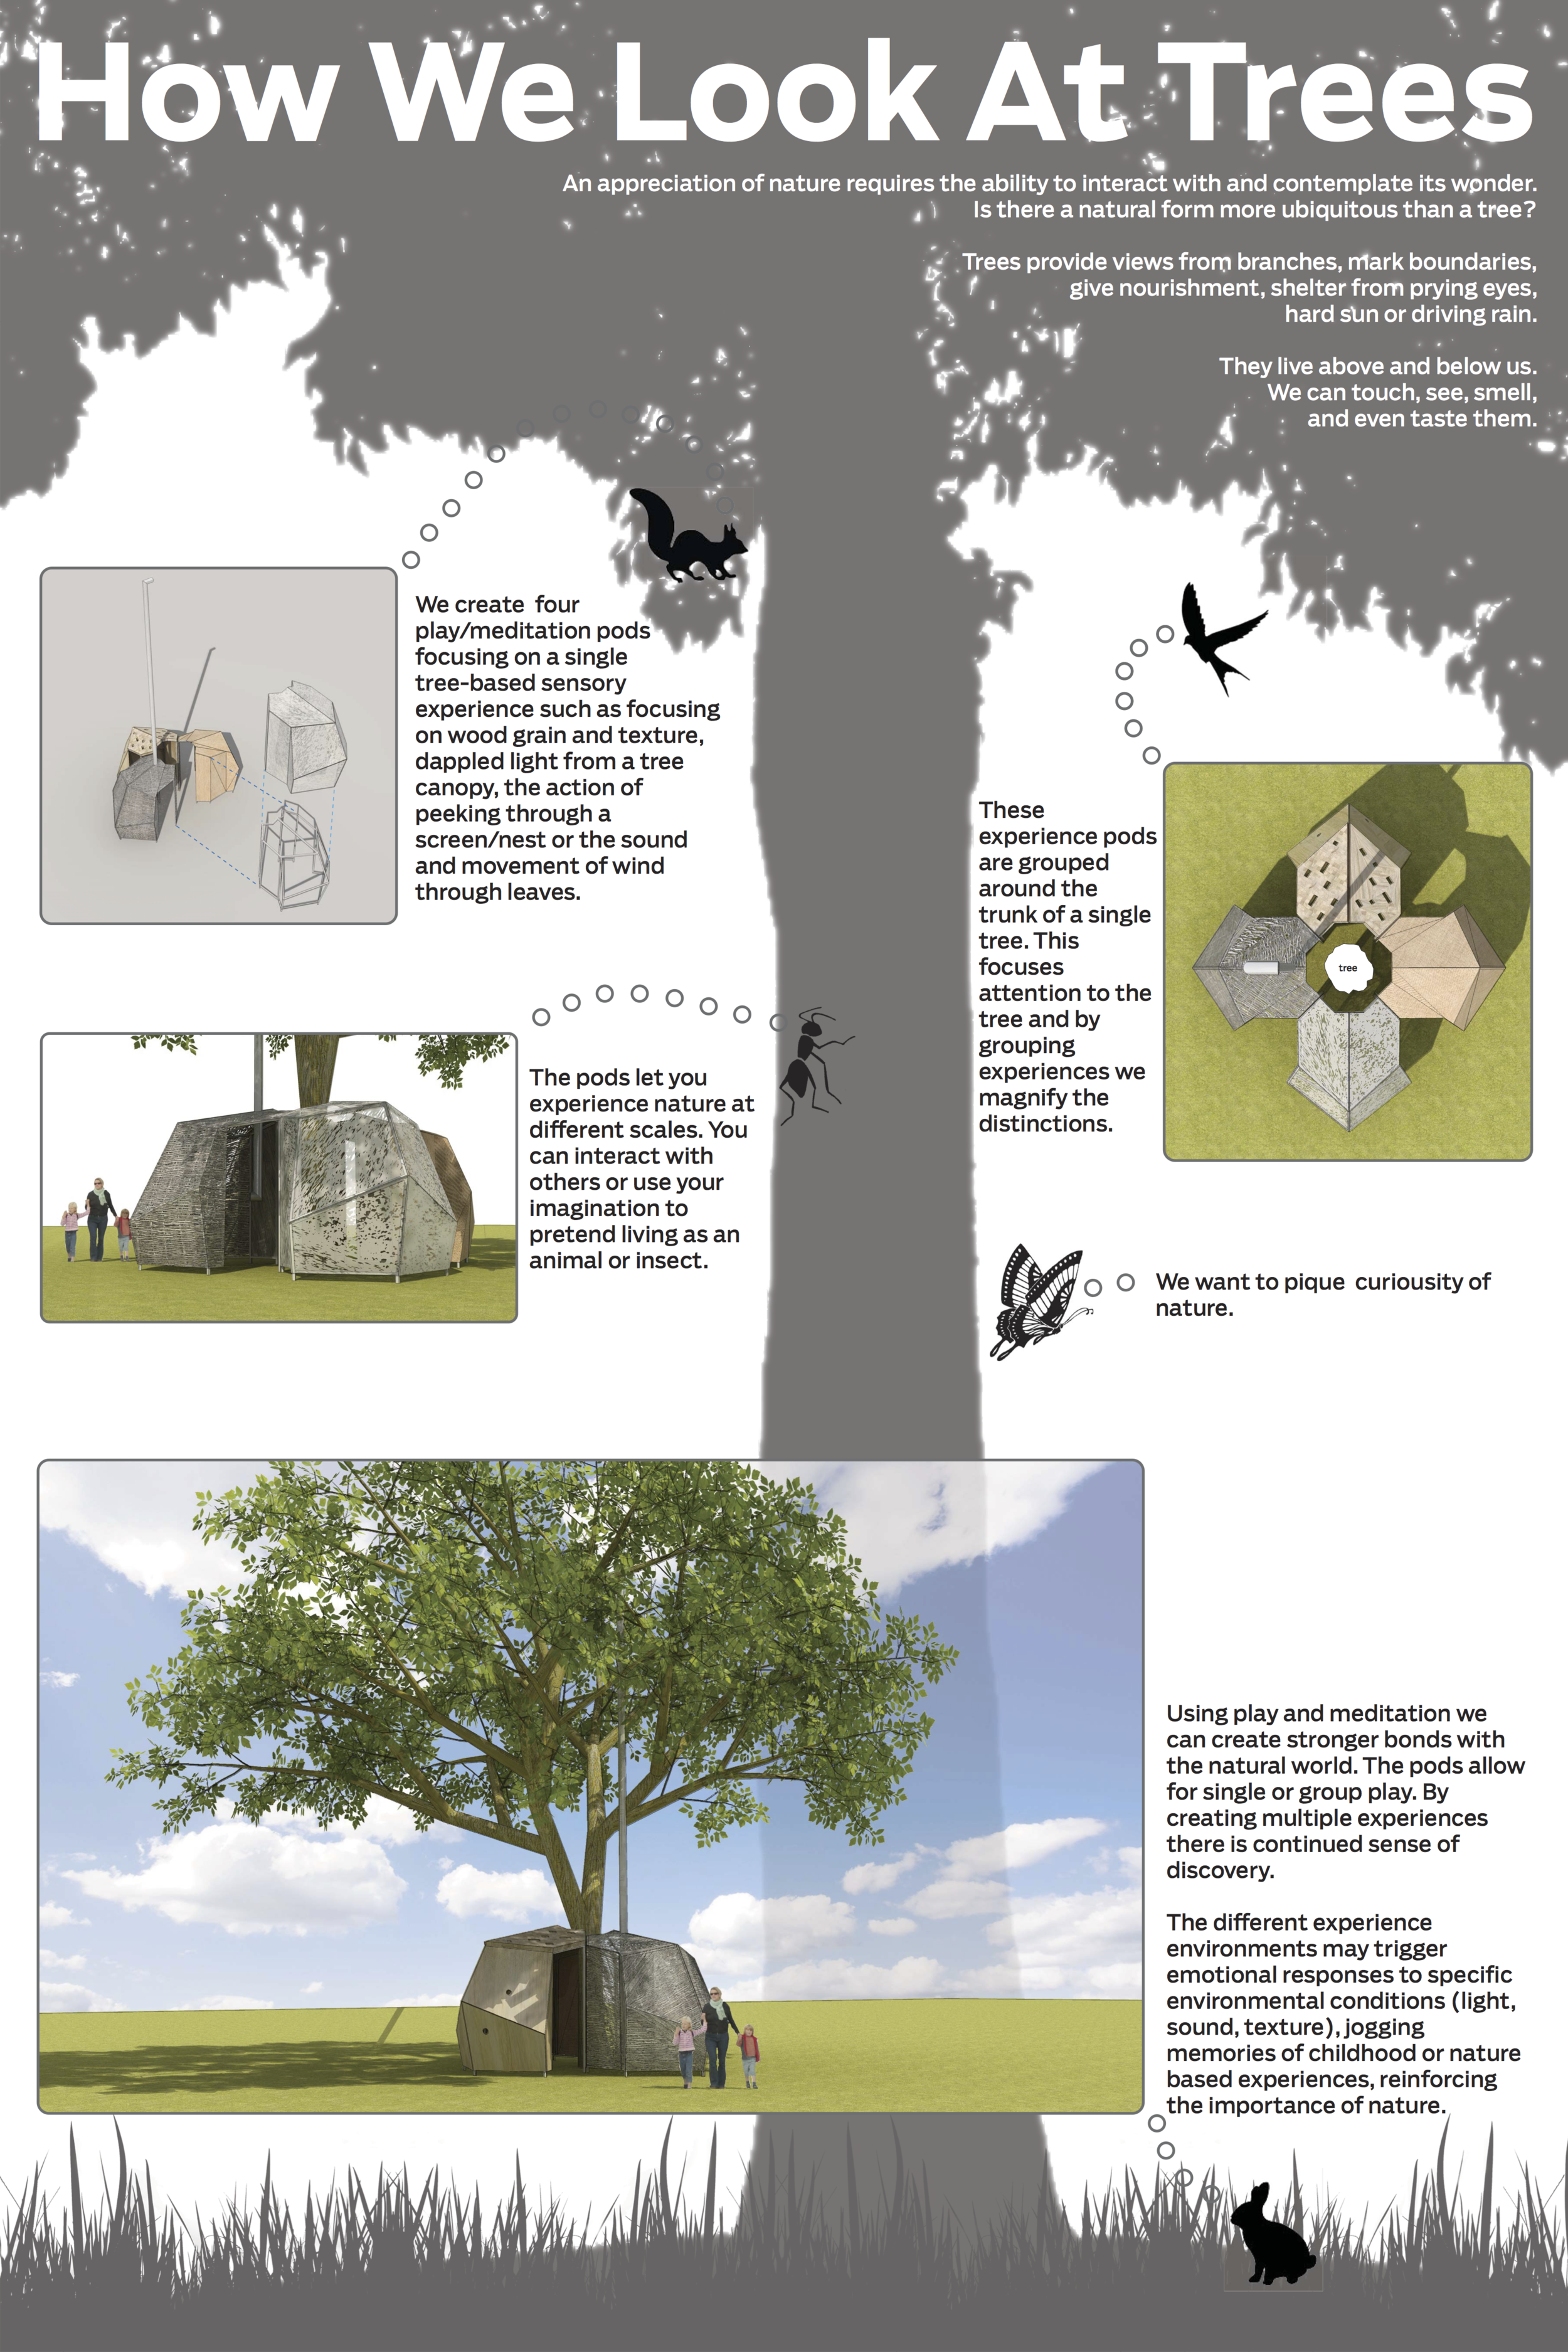 How We Look At Trees - Botanical Garden Design Concept